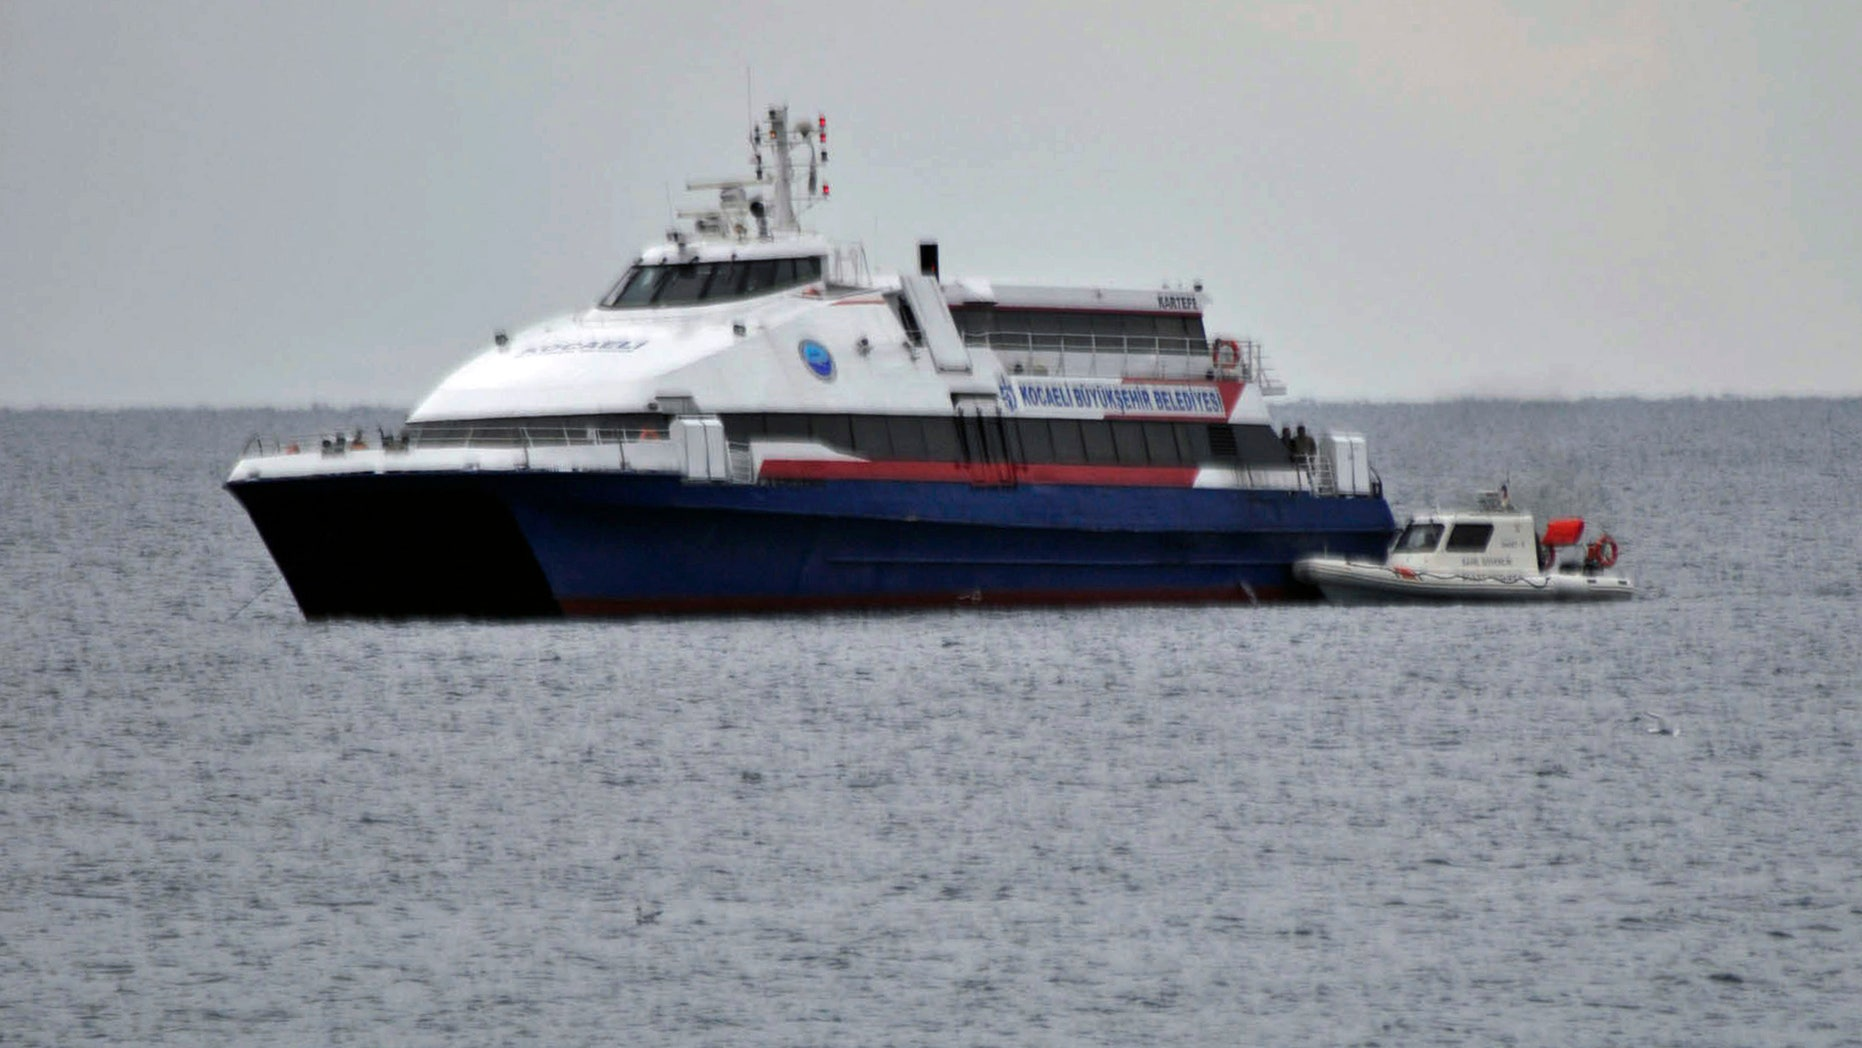 Nov. 12, 2011: The hijacked passenger boat Kartepe is seen after a commando raid off Silivri, west of Istanbul, Turkey.